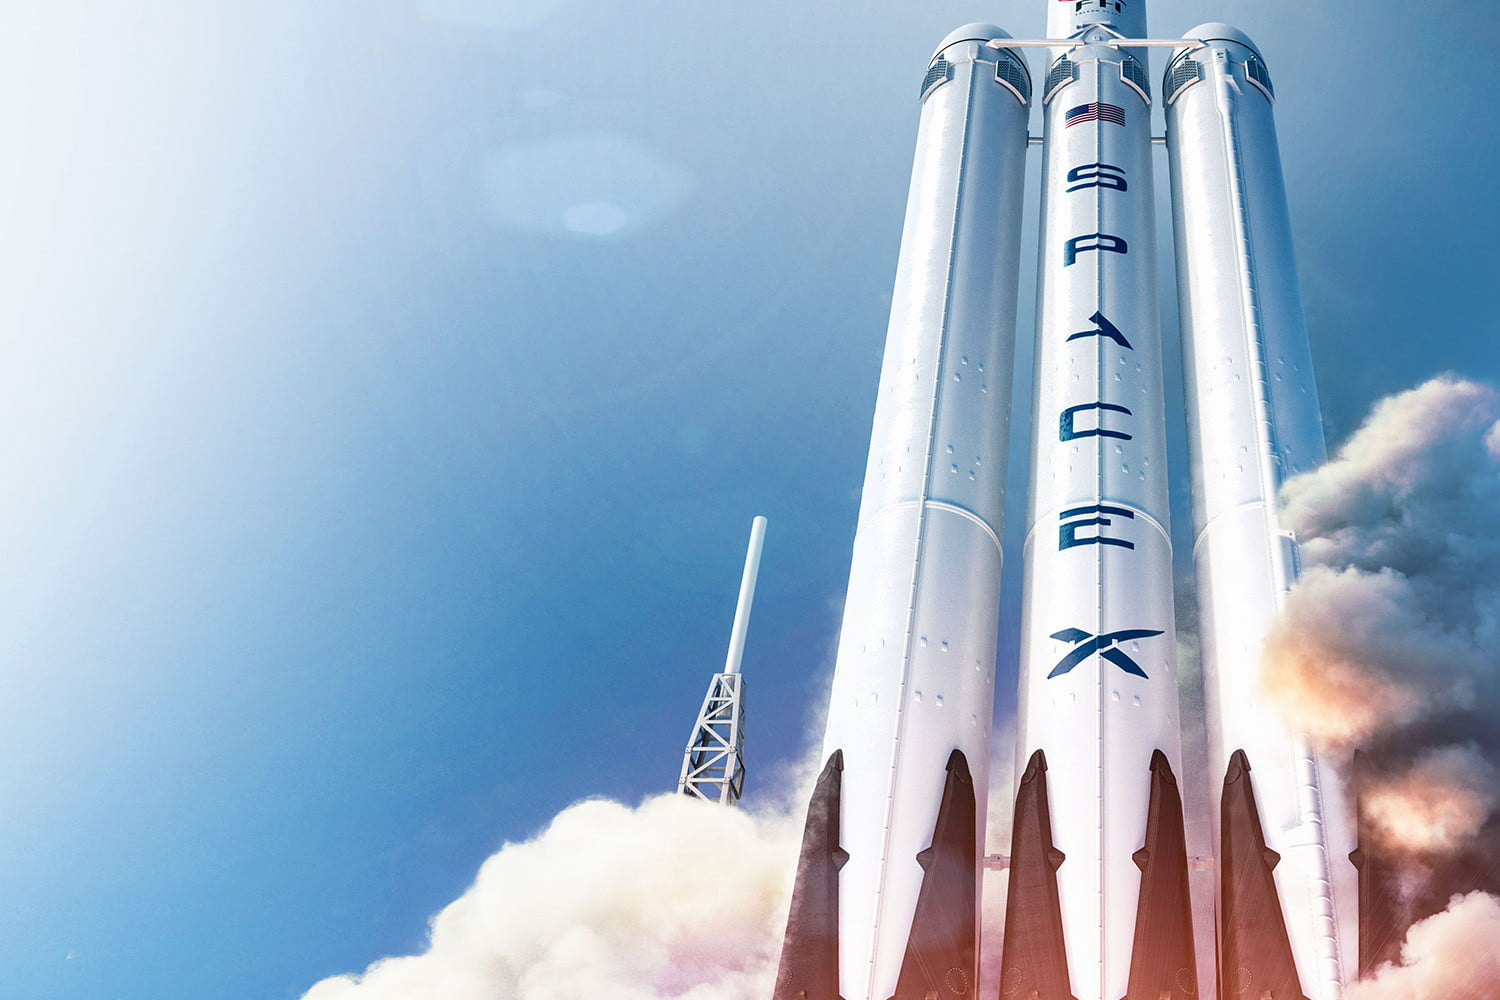 NASA Is Working With SpaceX On Orbital Refueling Technology